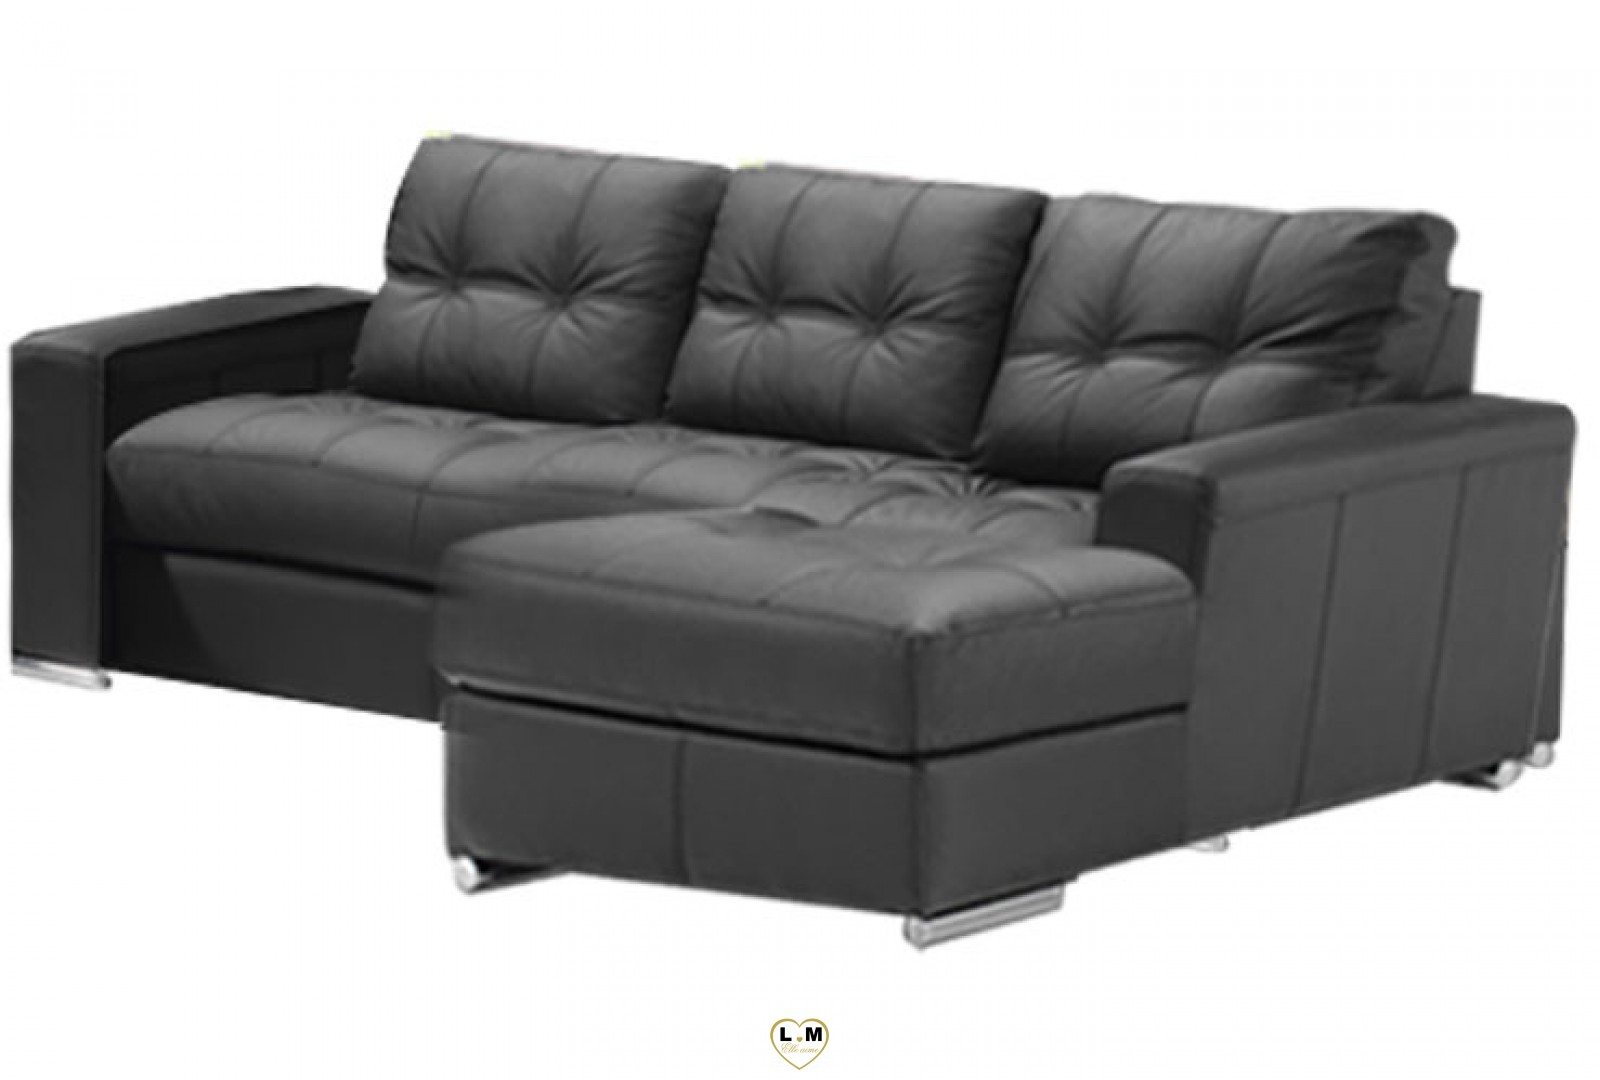 alexie angle chaise longue ensemble salon cuir lignemeuble com. Black Bedroom Furniture Sets. Home Design Ideas